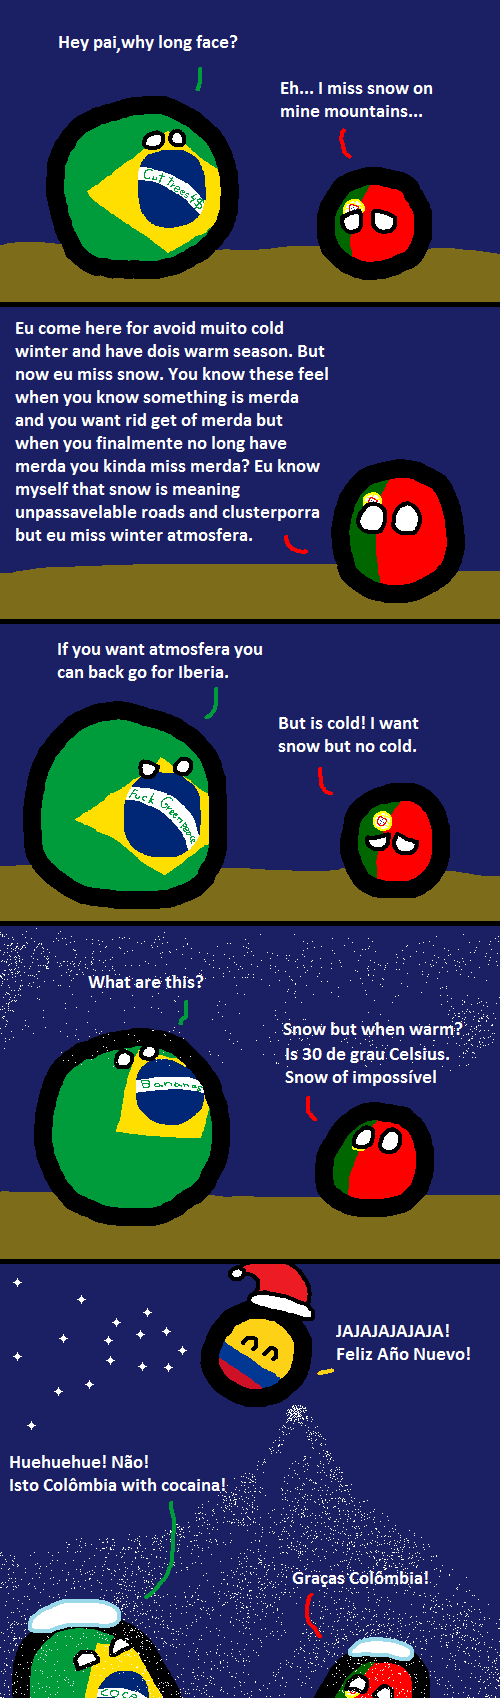 Portugal visits his child for vacations